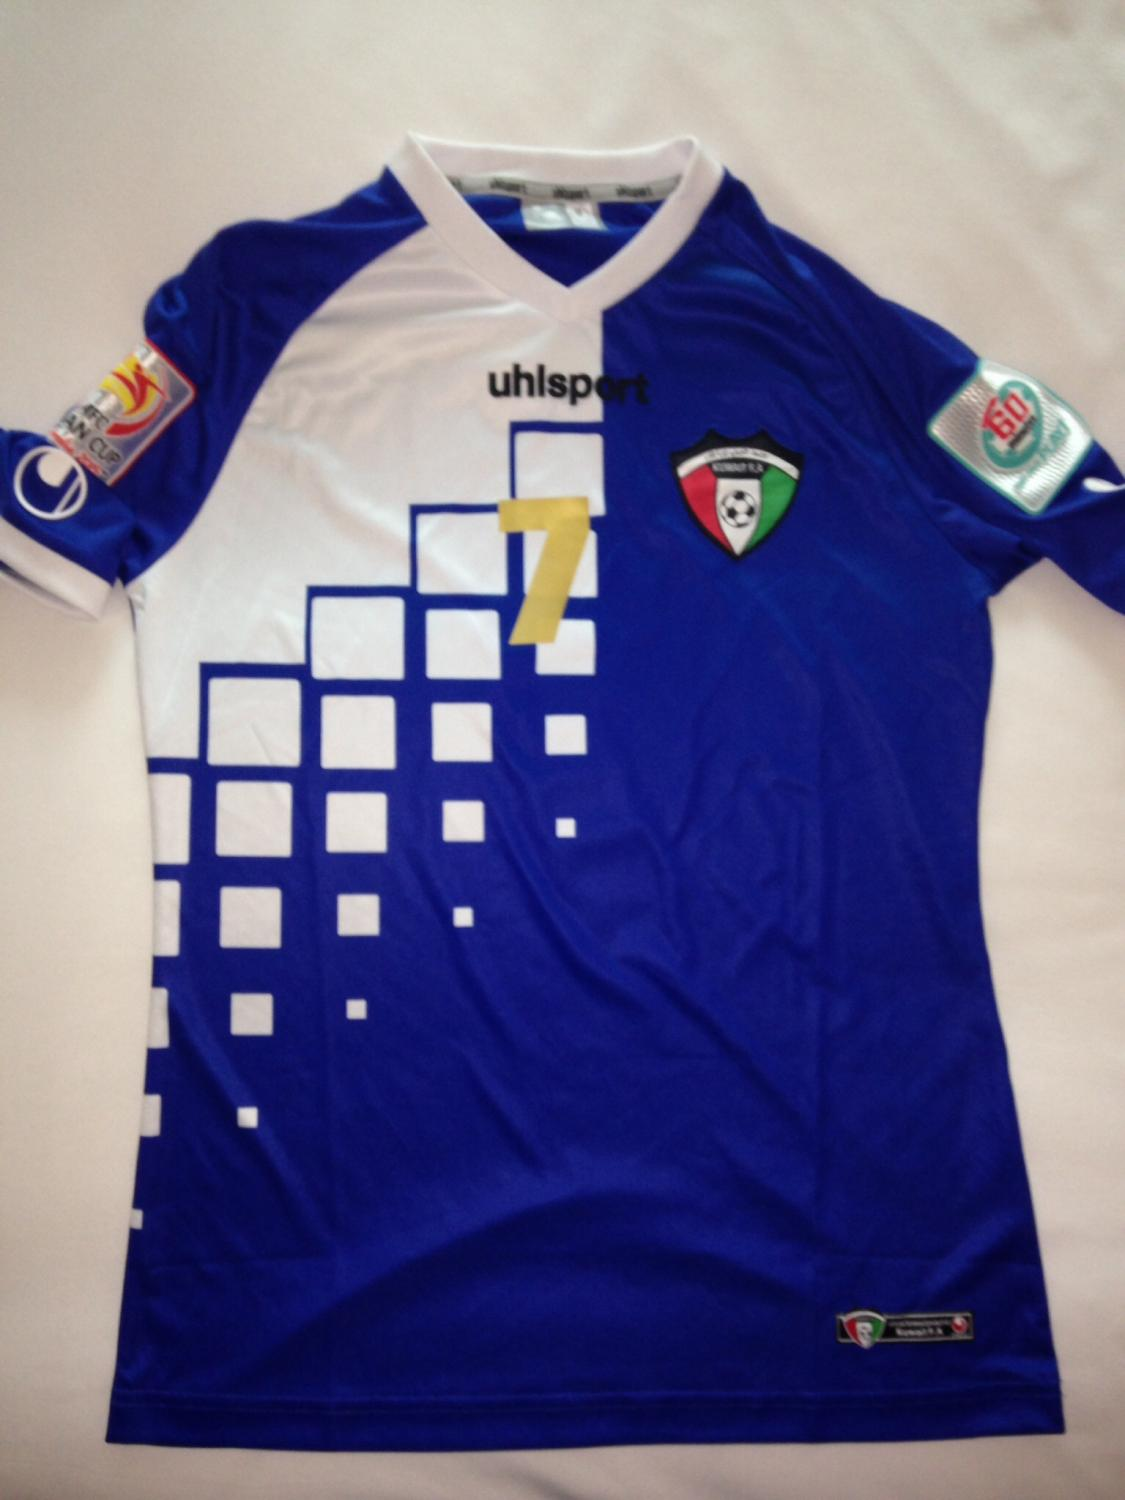 Kuwait Cup Shirt Football Shirt 2014 2015